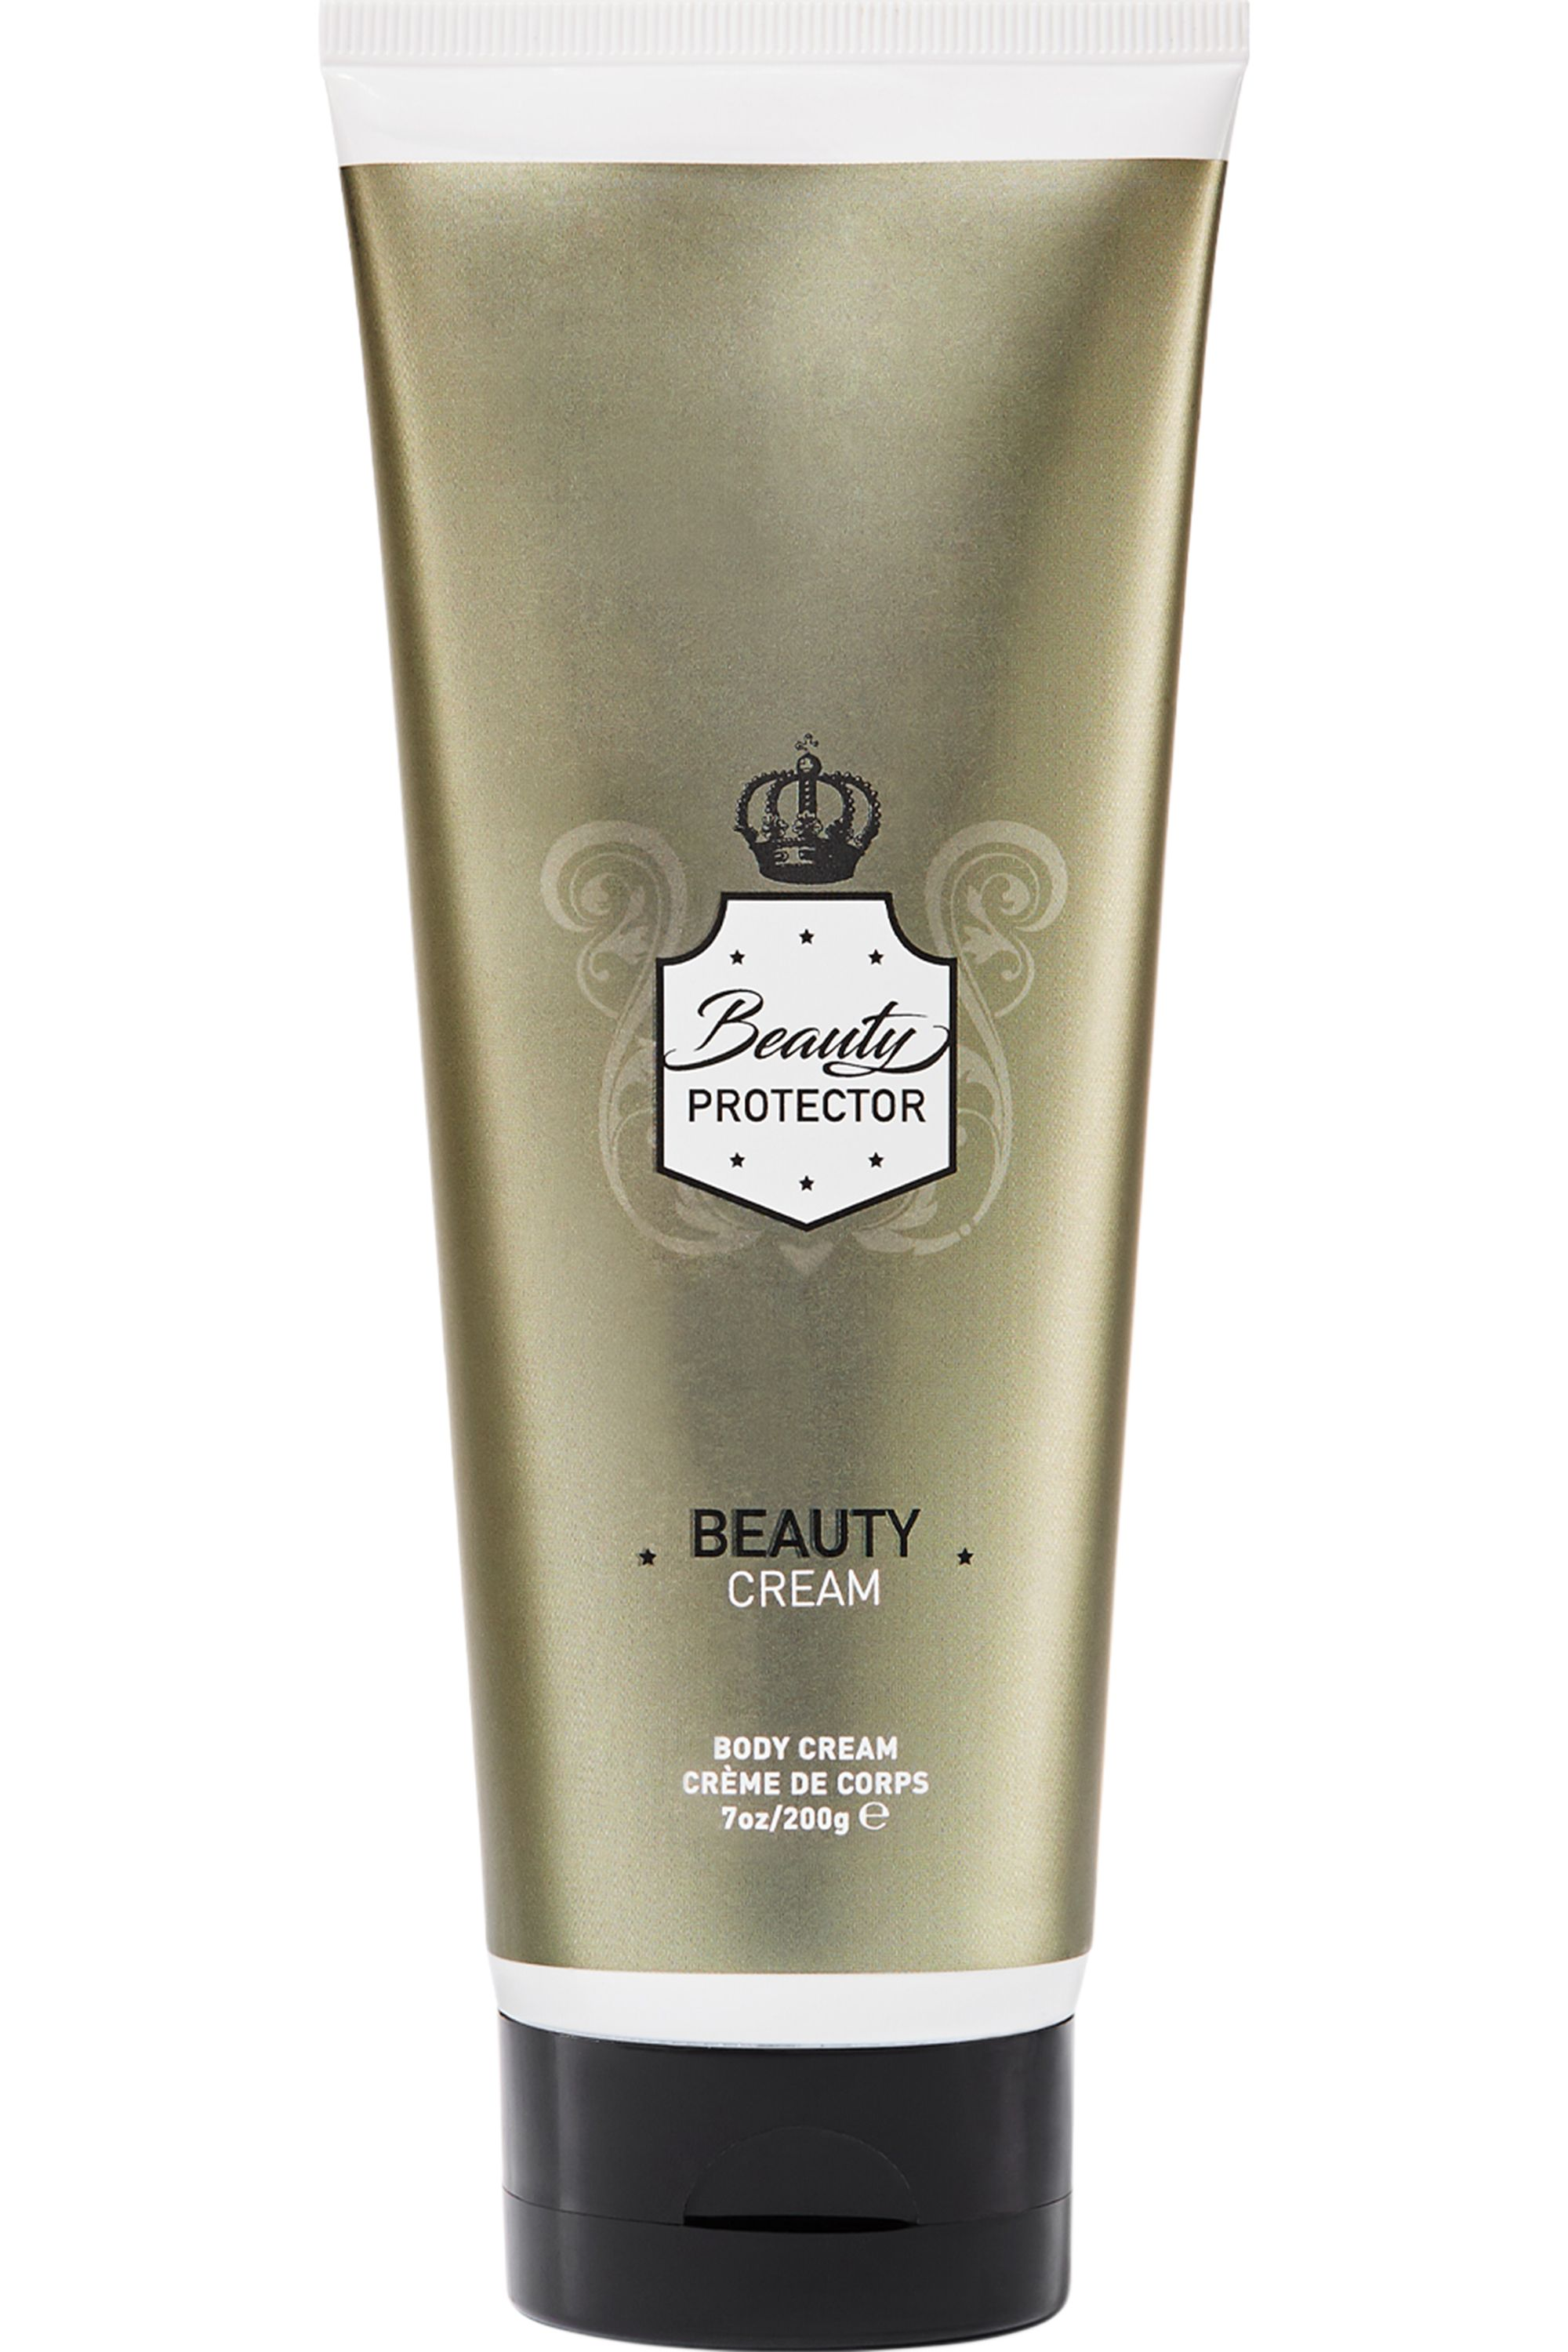 Blissim : Beauty Protector - Crème corps Beauty Cream - Crème corps Beauty Cream